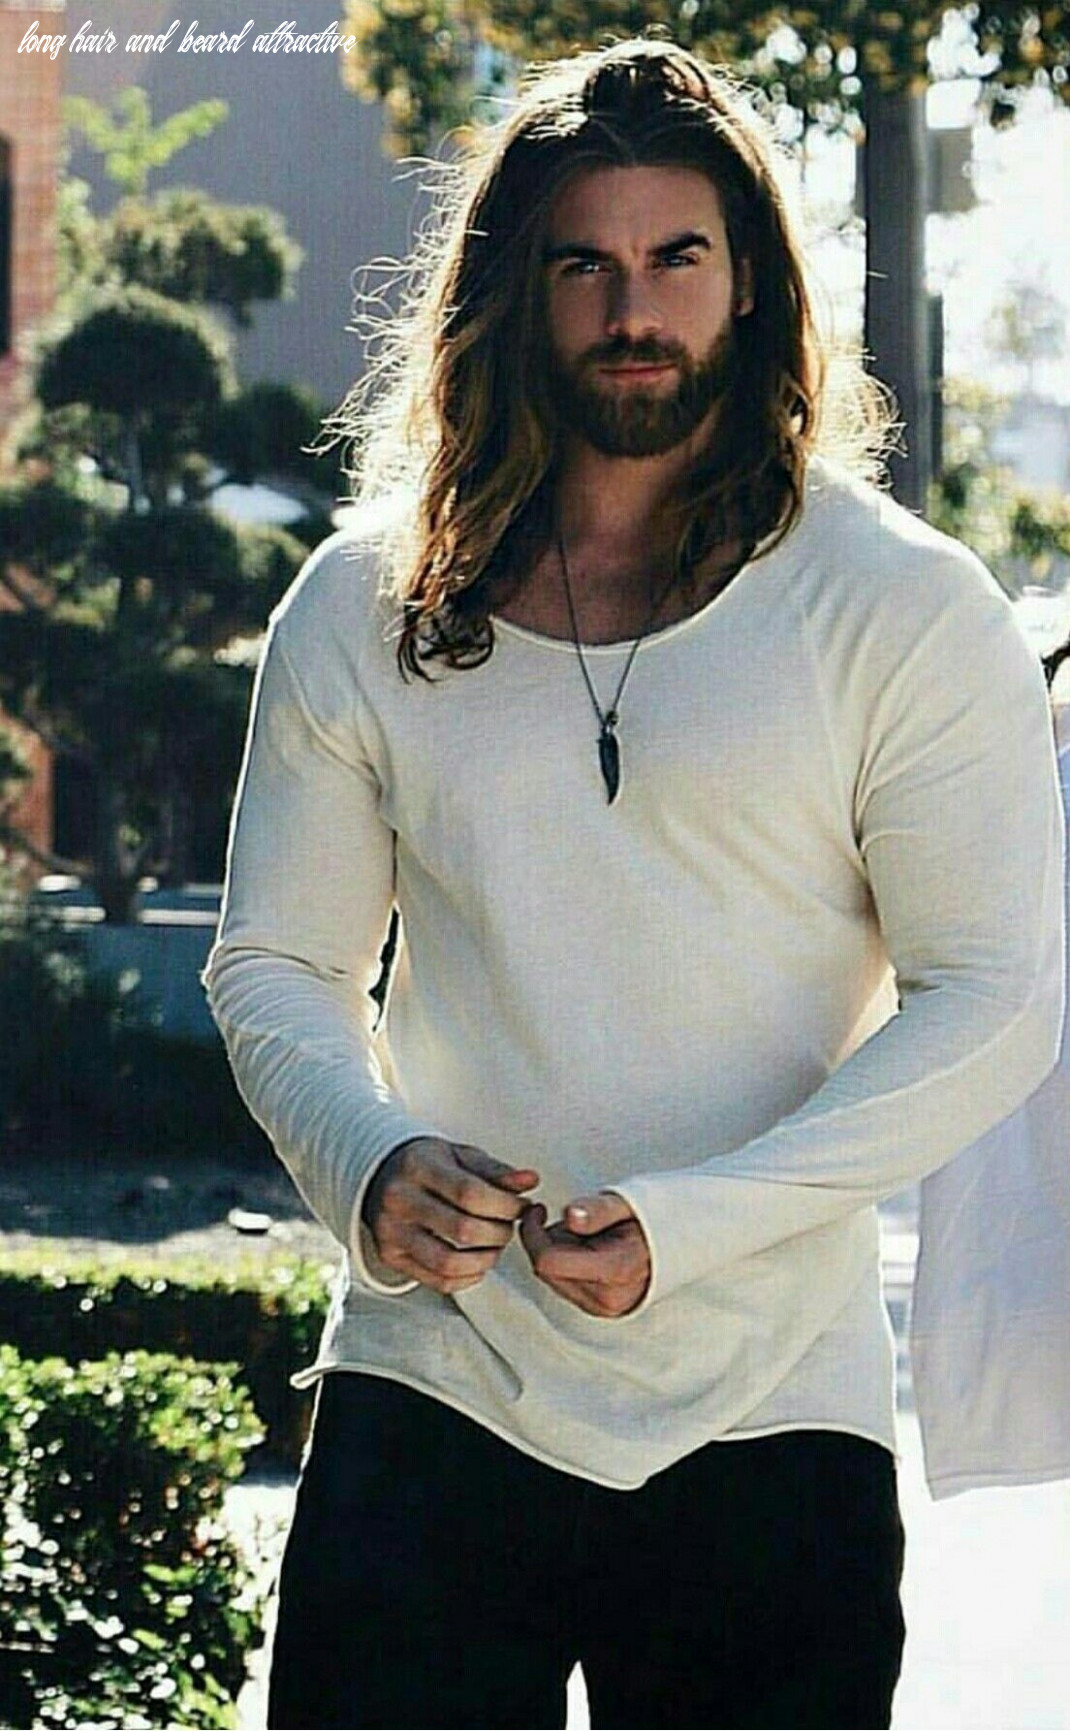 Pin by sparrow on people and references | beautiful men, men, fine men long hair and beard attractive